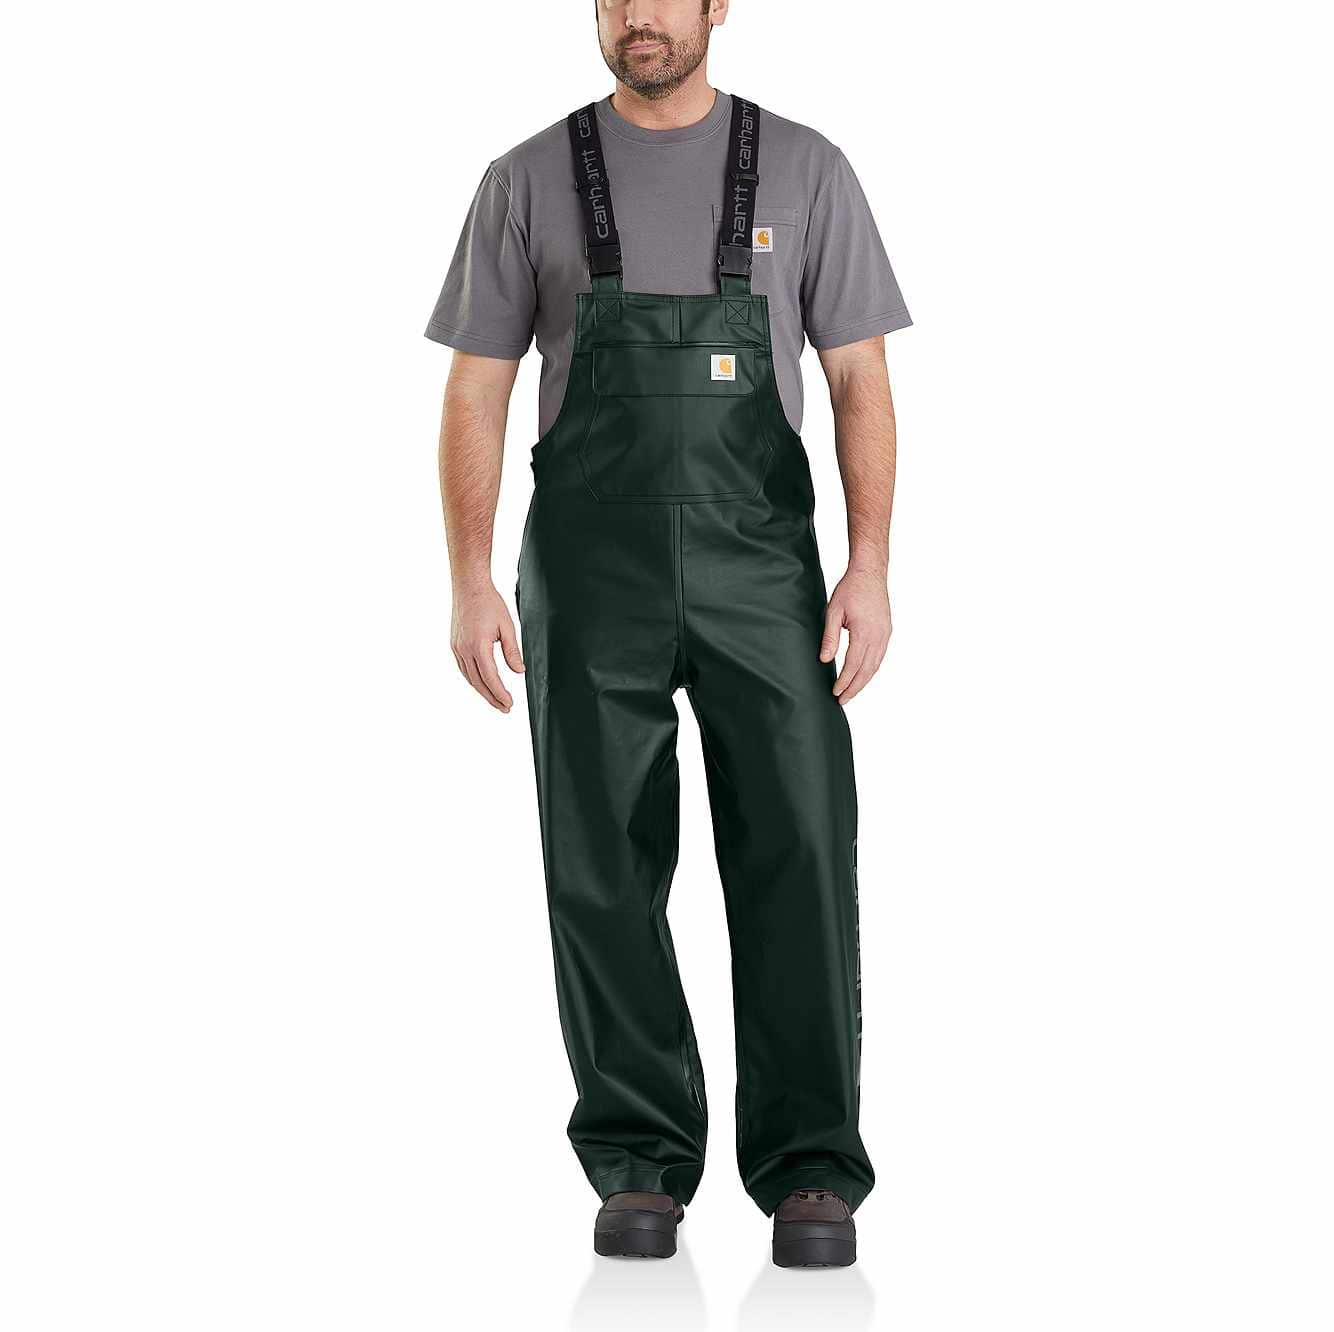 Picture of Midweight Waterproof Rainstorm Bib Overalls in Canopy Green